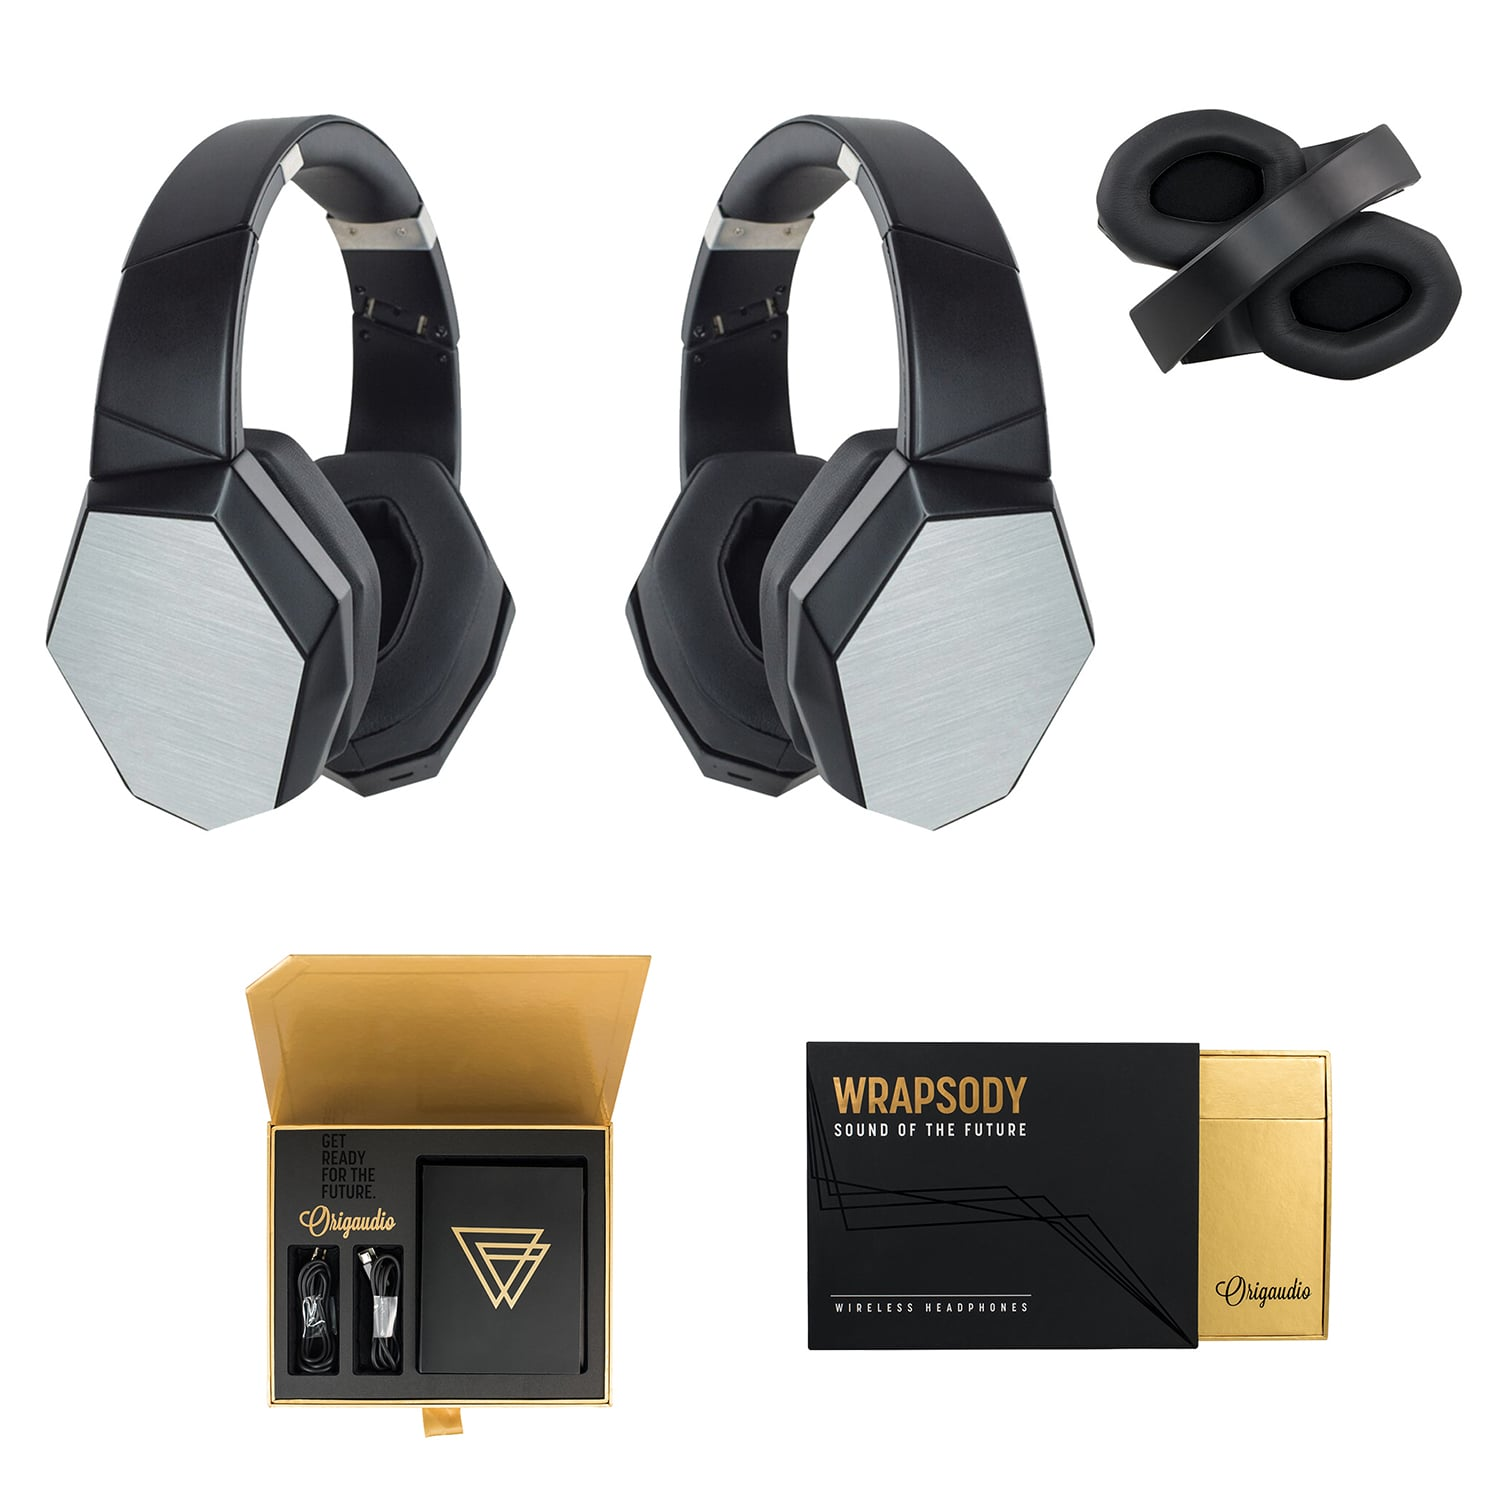 Picture of Wrapsody Wireless Headphones